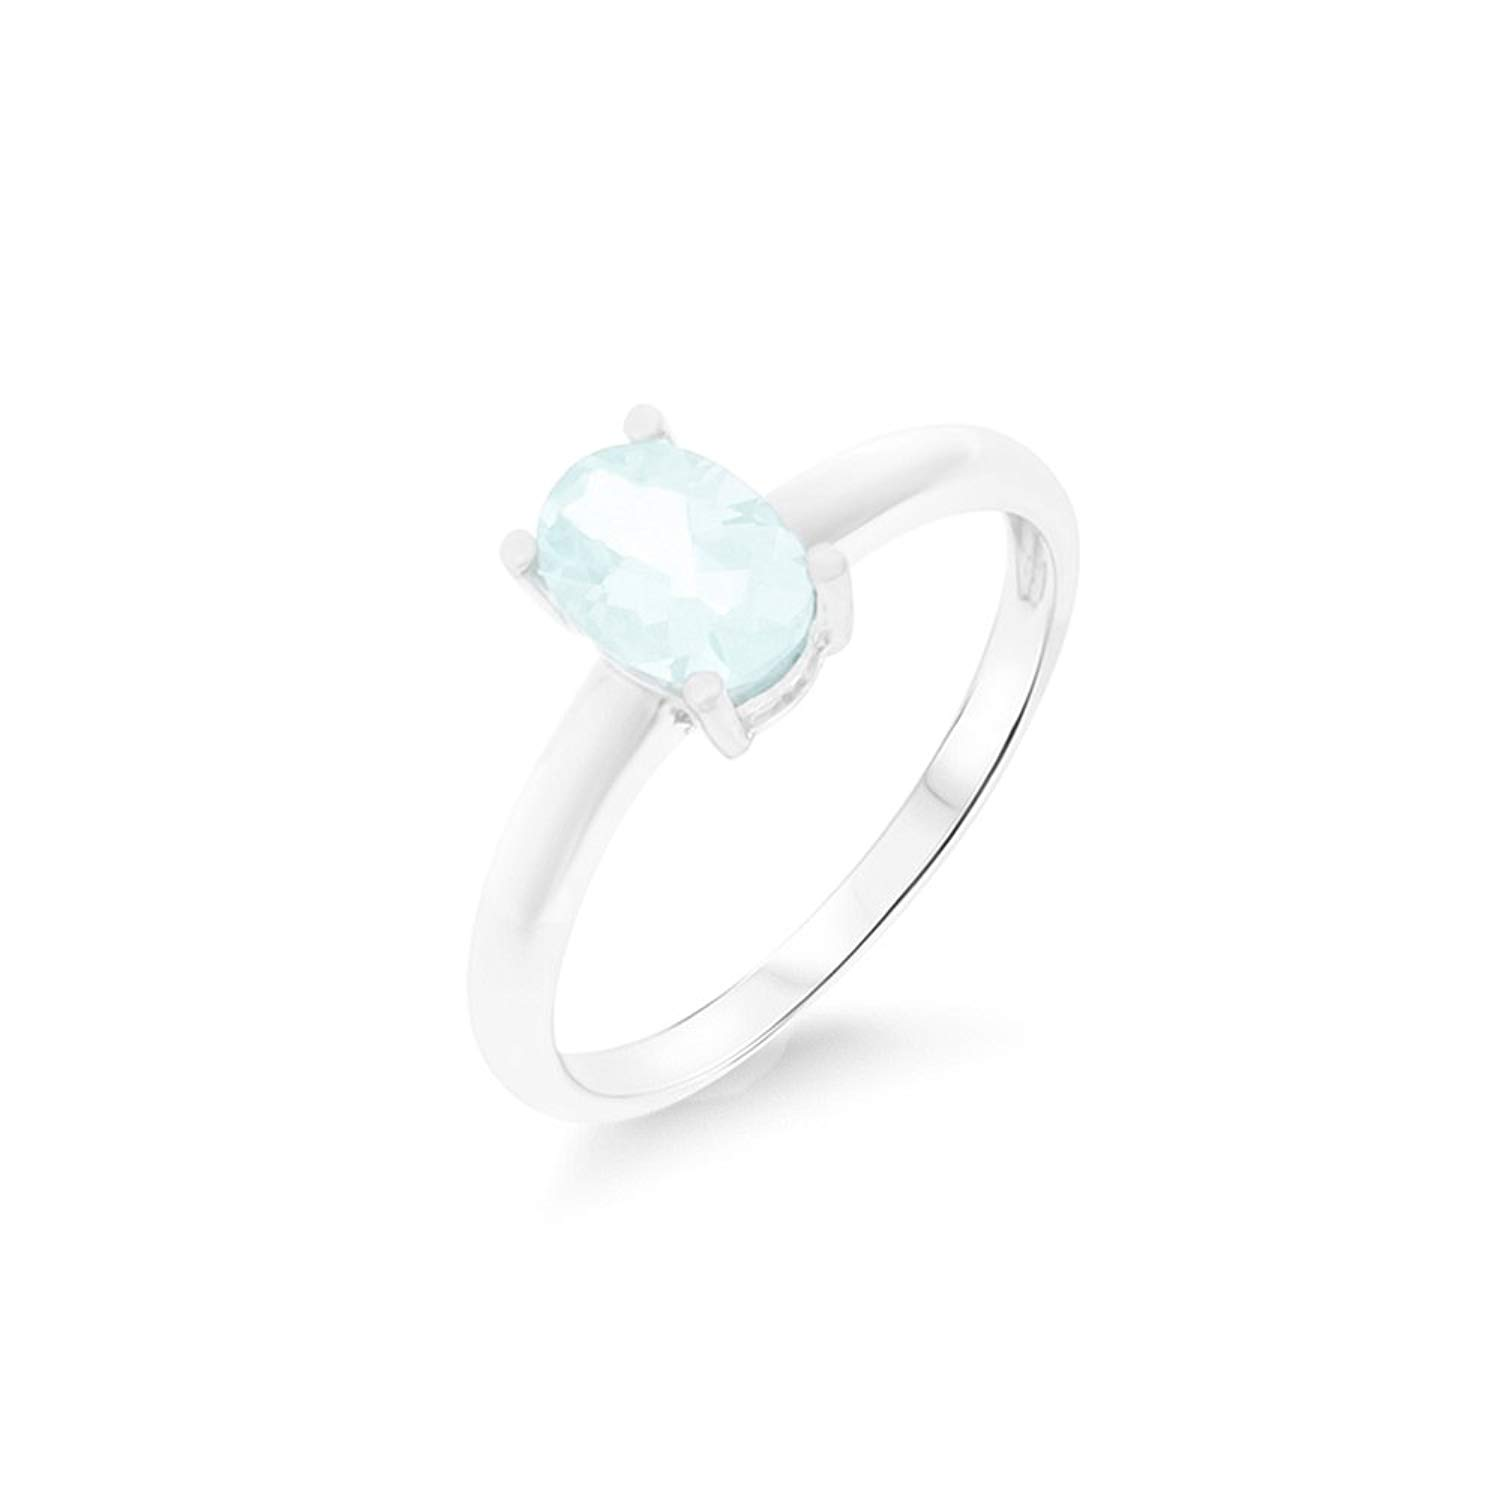 0.79CTW .925 Sterling Silver Genuine Natural Aquamarine Oval Shaped 5 x 7 mm. Solitaire Ring Size 6.25